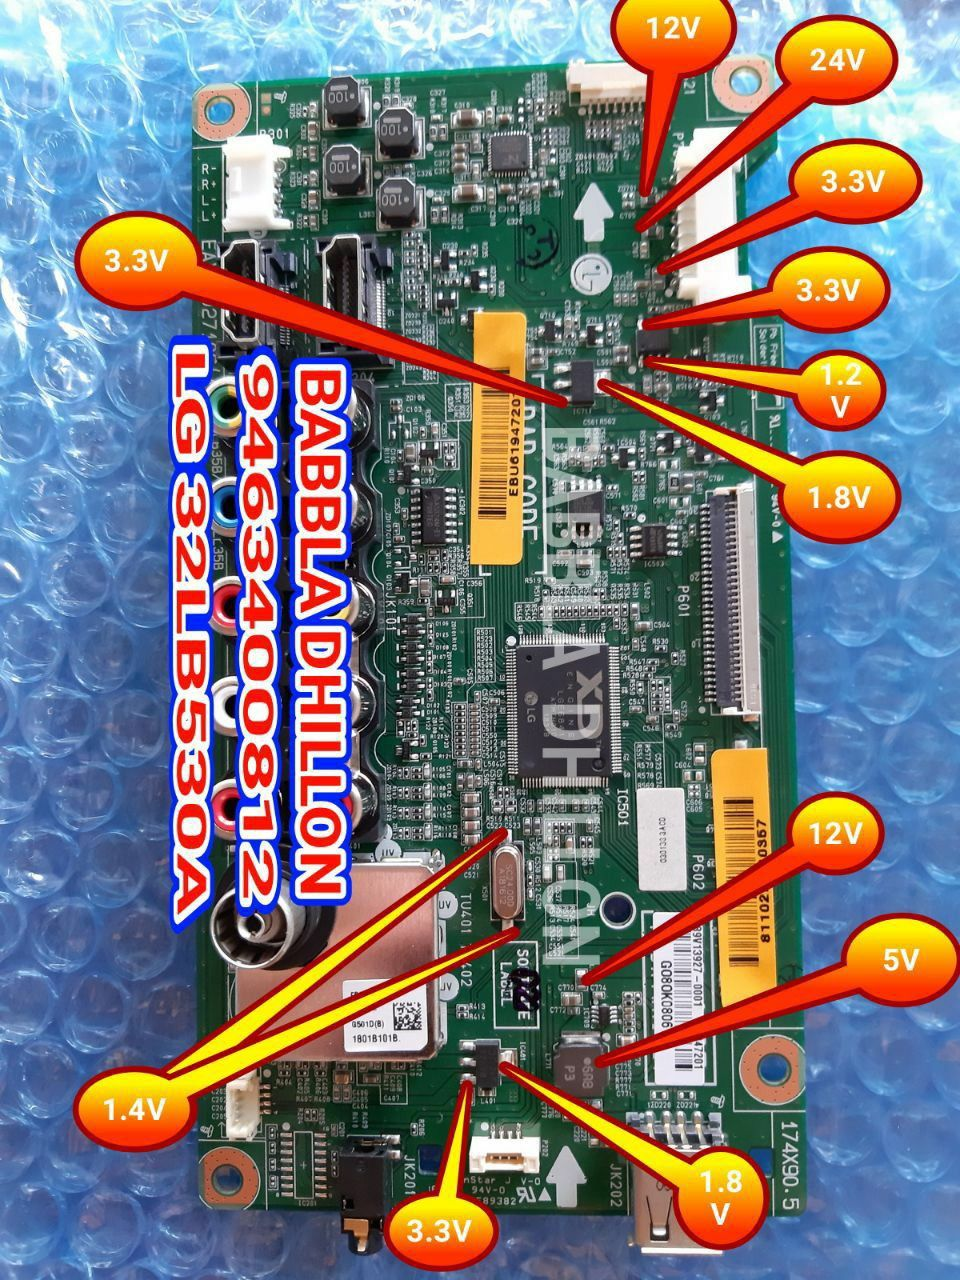 Pin By  U101c U1030 U1015 U103b U102d U102f U1000 U103c U102e U1038 007 On Lvds In 2020  With Images